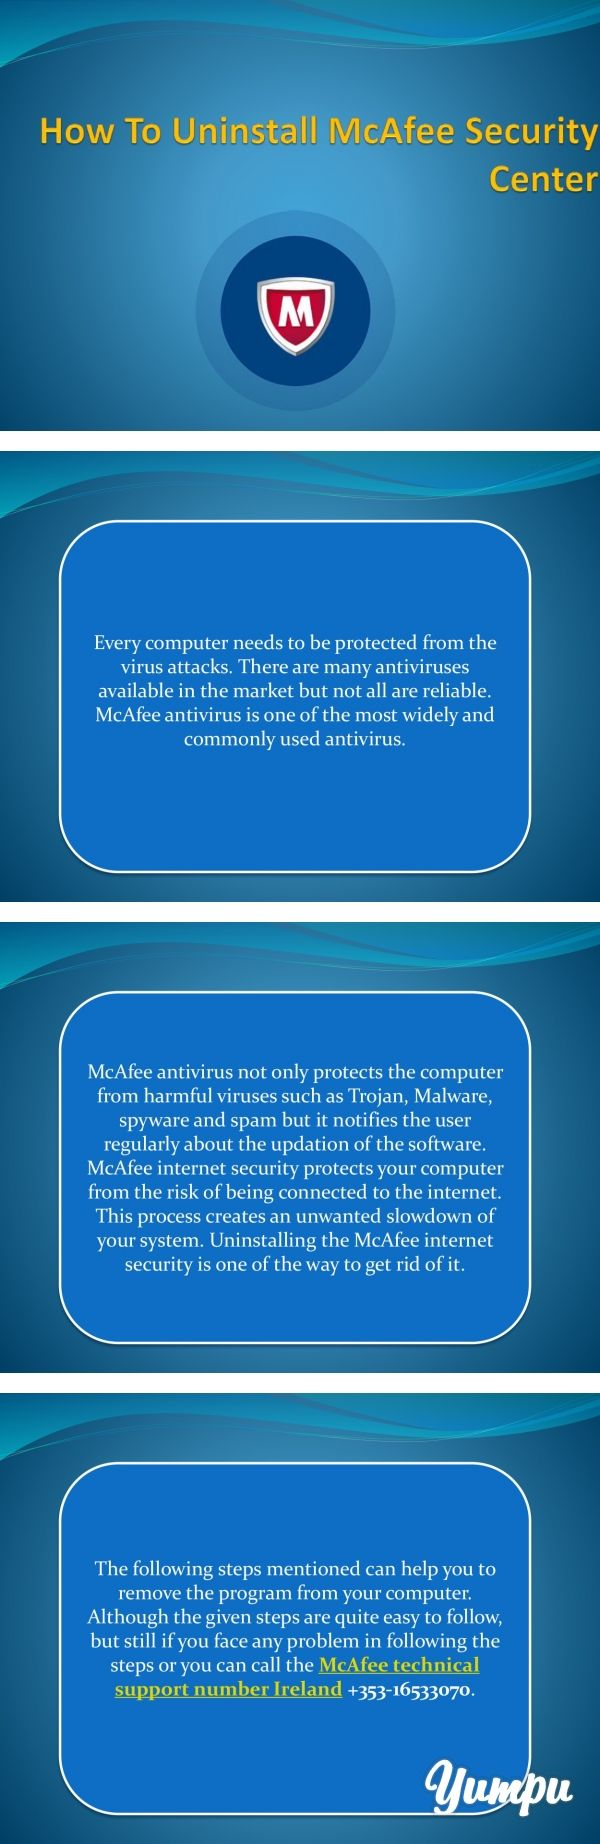 29 best toll free number for mcafee customer images on pinterest how to uninstall mcafee security center magazine with 9 pages 1betcityfo Gallery